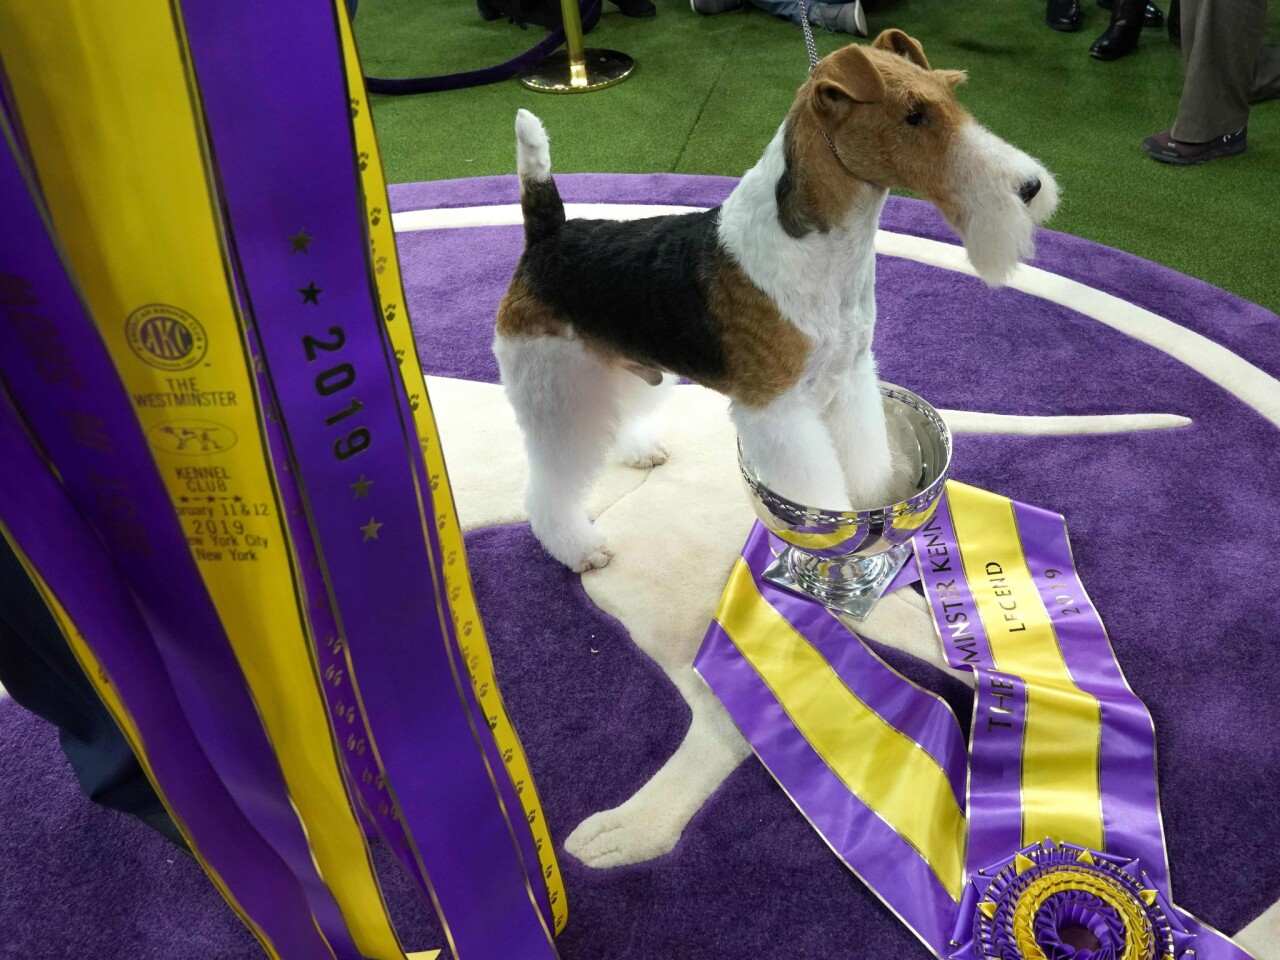 143rd Westminster Kennel Club Dog Show in New York